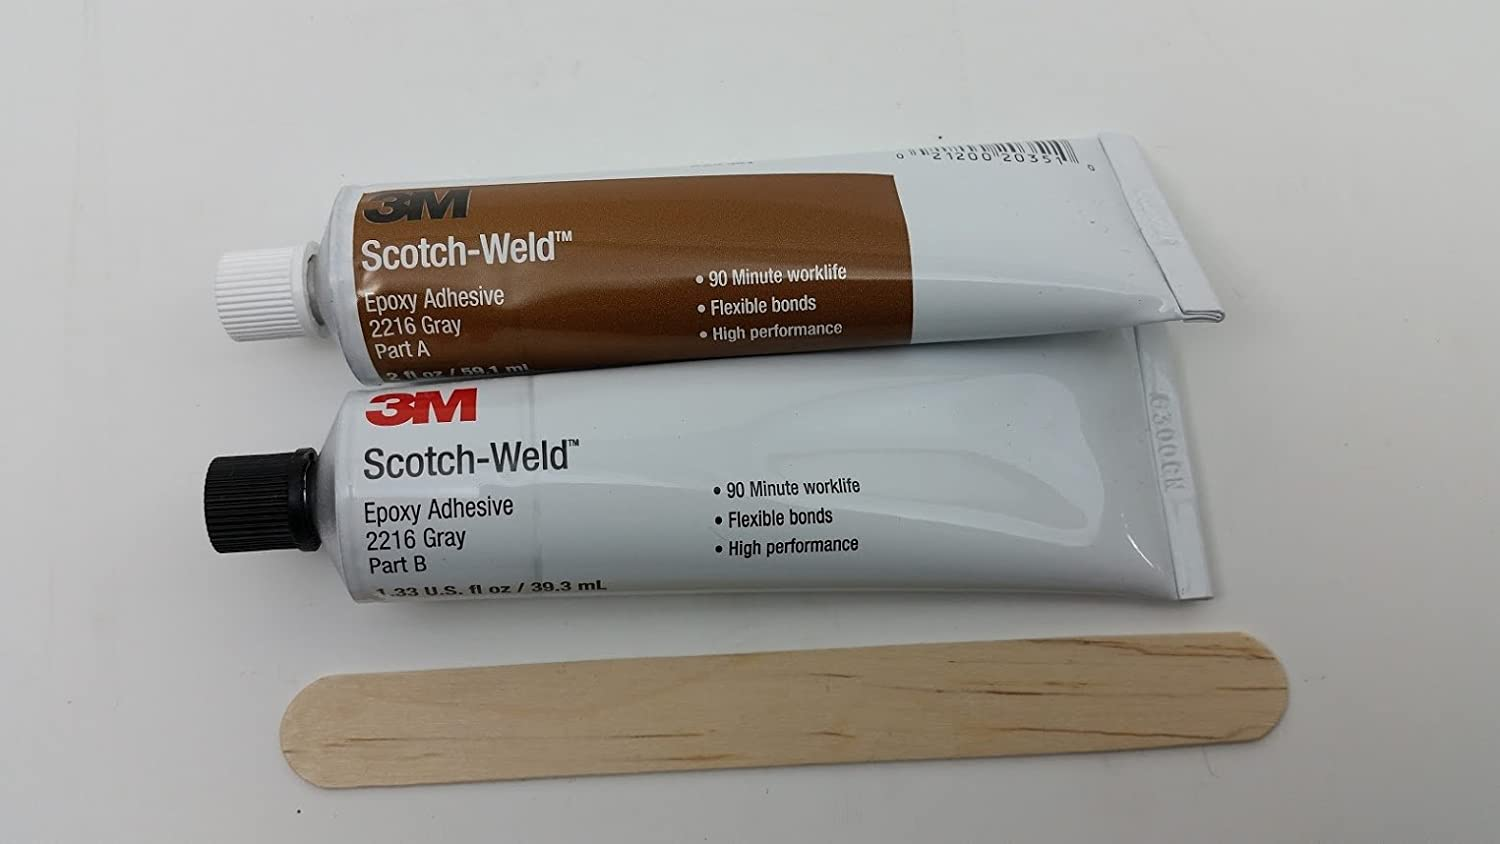 3M Scotch-Weld 2216 Epoxy Adhesive, 2 oz Tube Kit, Gray: Amazon.com:  Industrial & Scientific